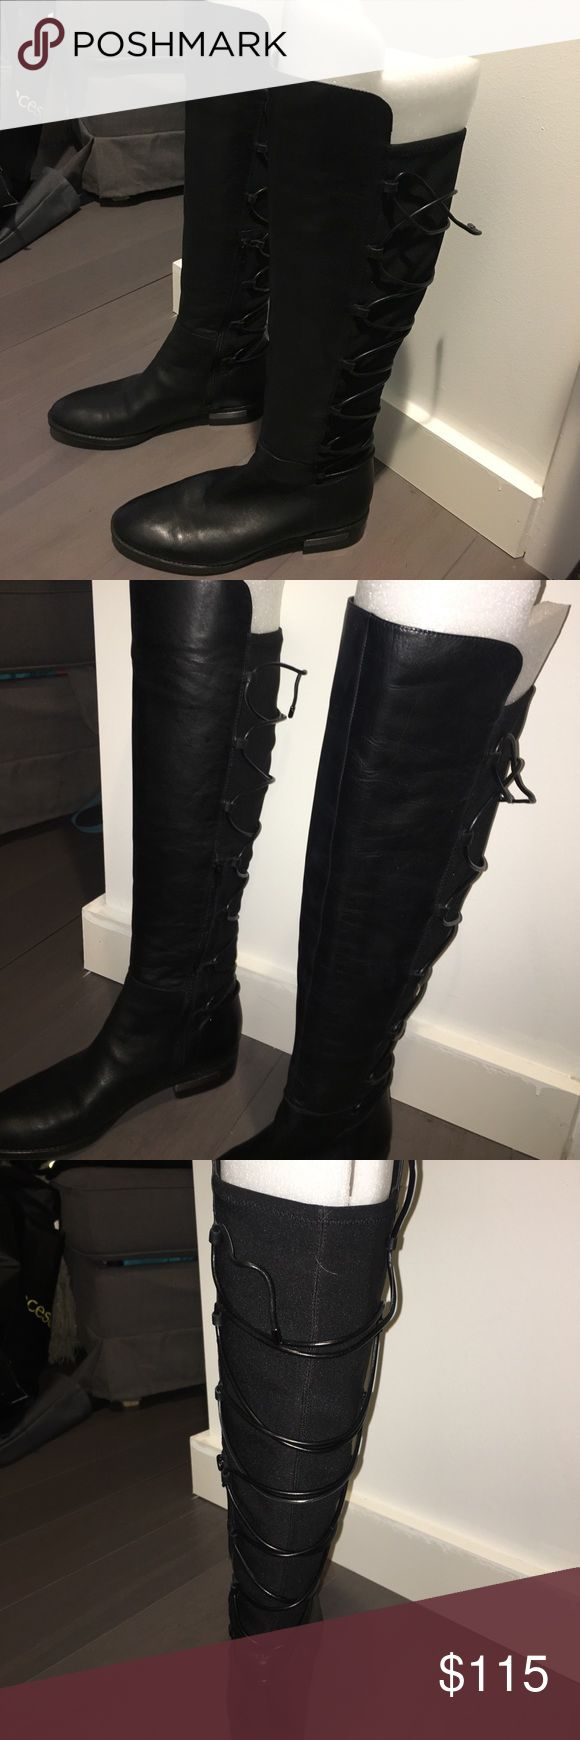 Vince Camuto Parle Stretch Boot This season's hottest Vince Camuto knee high boot! Currently sold out on the VC website, this pair has been worn once. Great for someone needing some extra stretch in the calf area- super cute criss cross tie design in back and riding boot look in the front. No trades, only cash offers, please! Vince Camuto Shoes Lace Up Boots